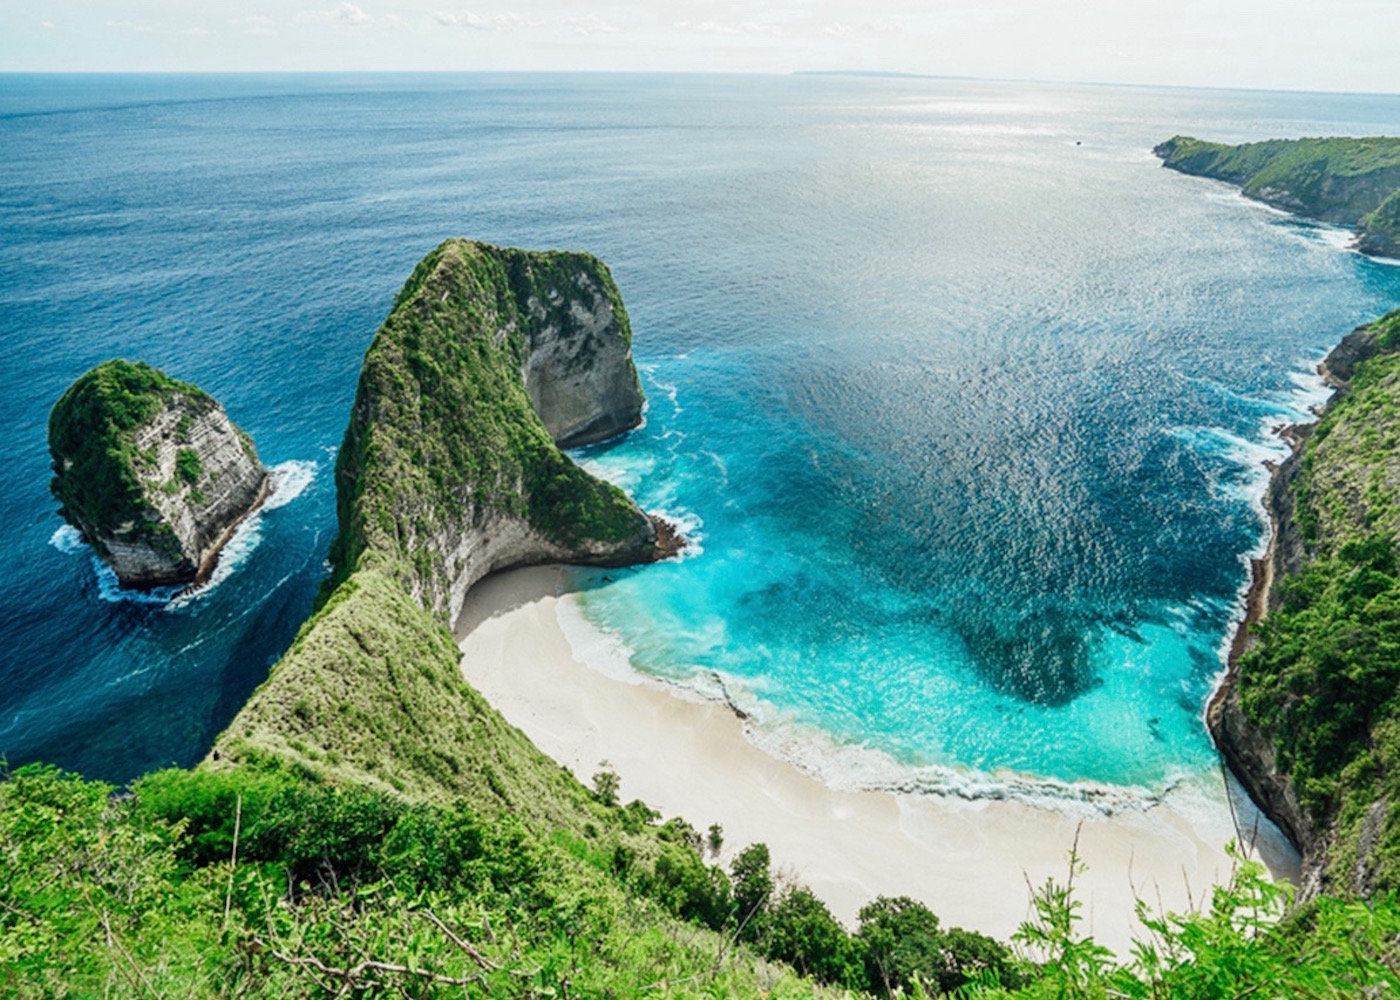 Aerial view of Kelingking Beach at Nusa Penida Island, Bali, Indonesia